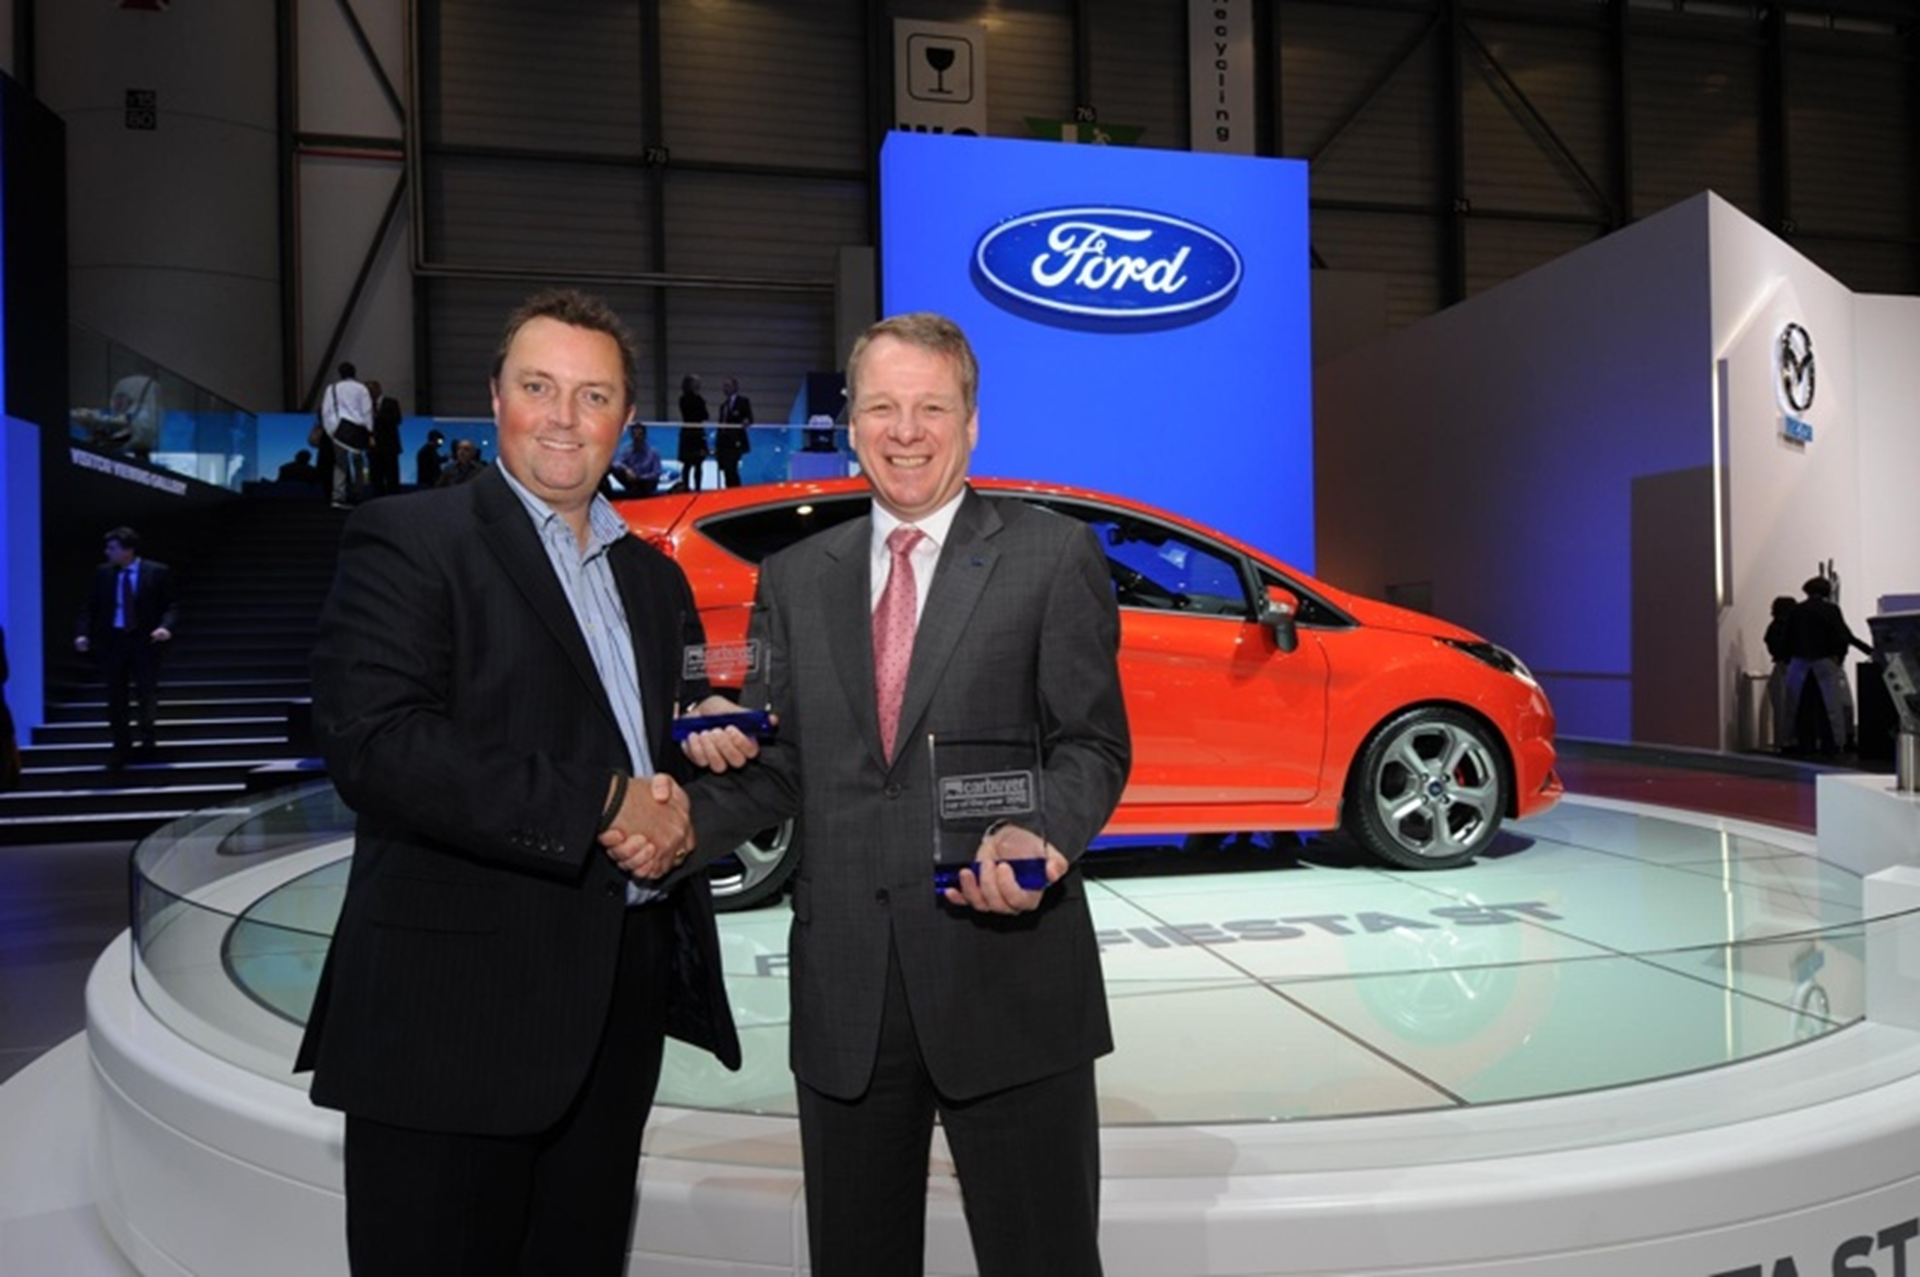 Ford Car Buyer Award